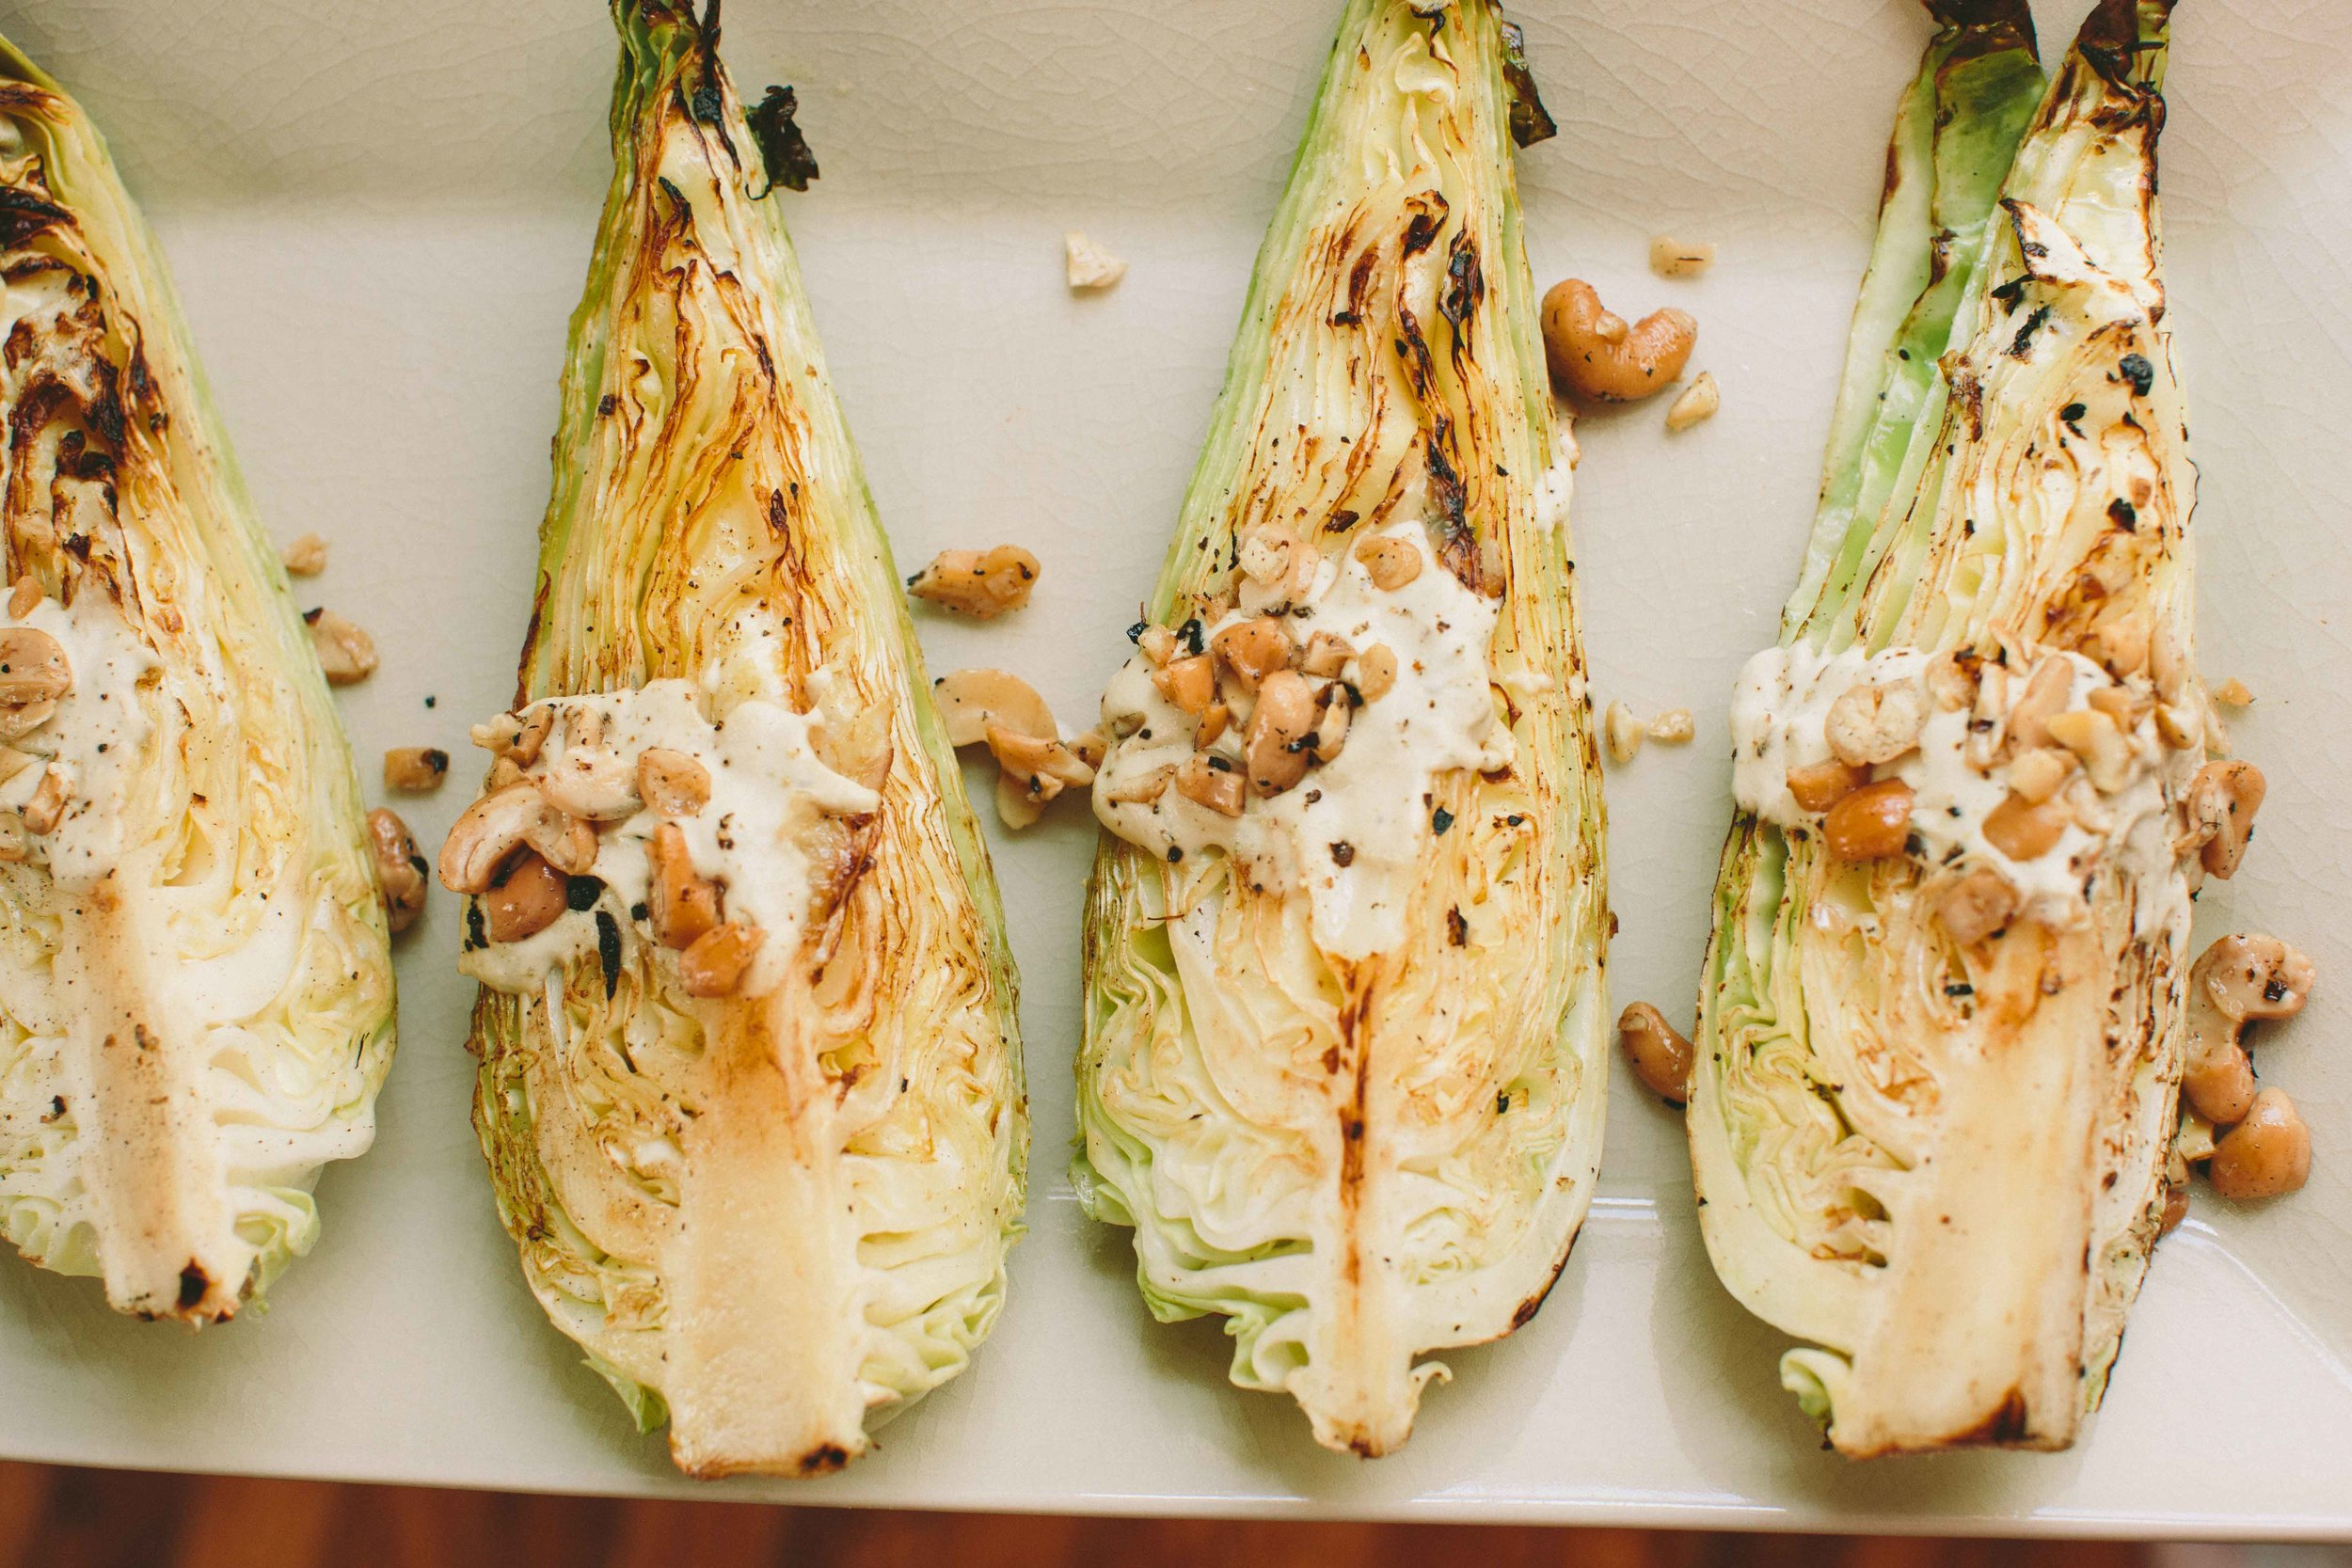 Warm Pointed Cabbage with Lemon-Garlic Cashew Dressing | A Thought For Food